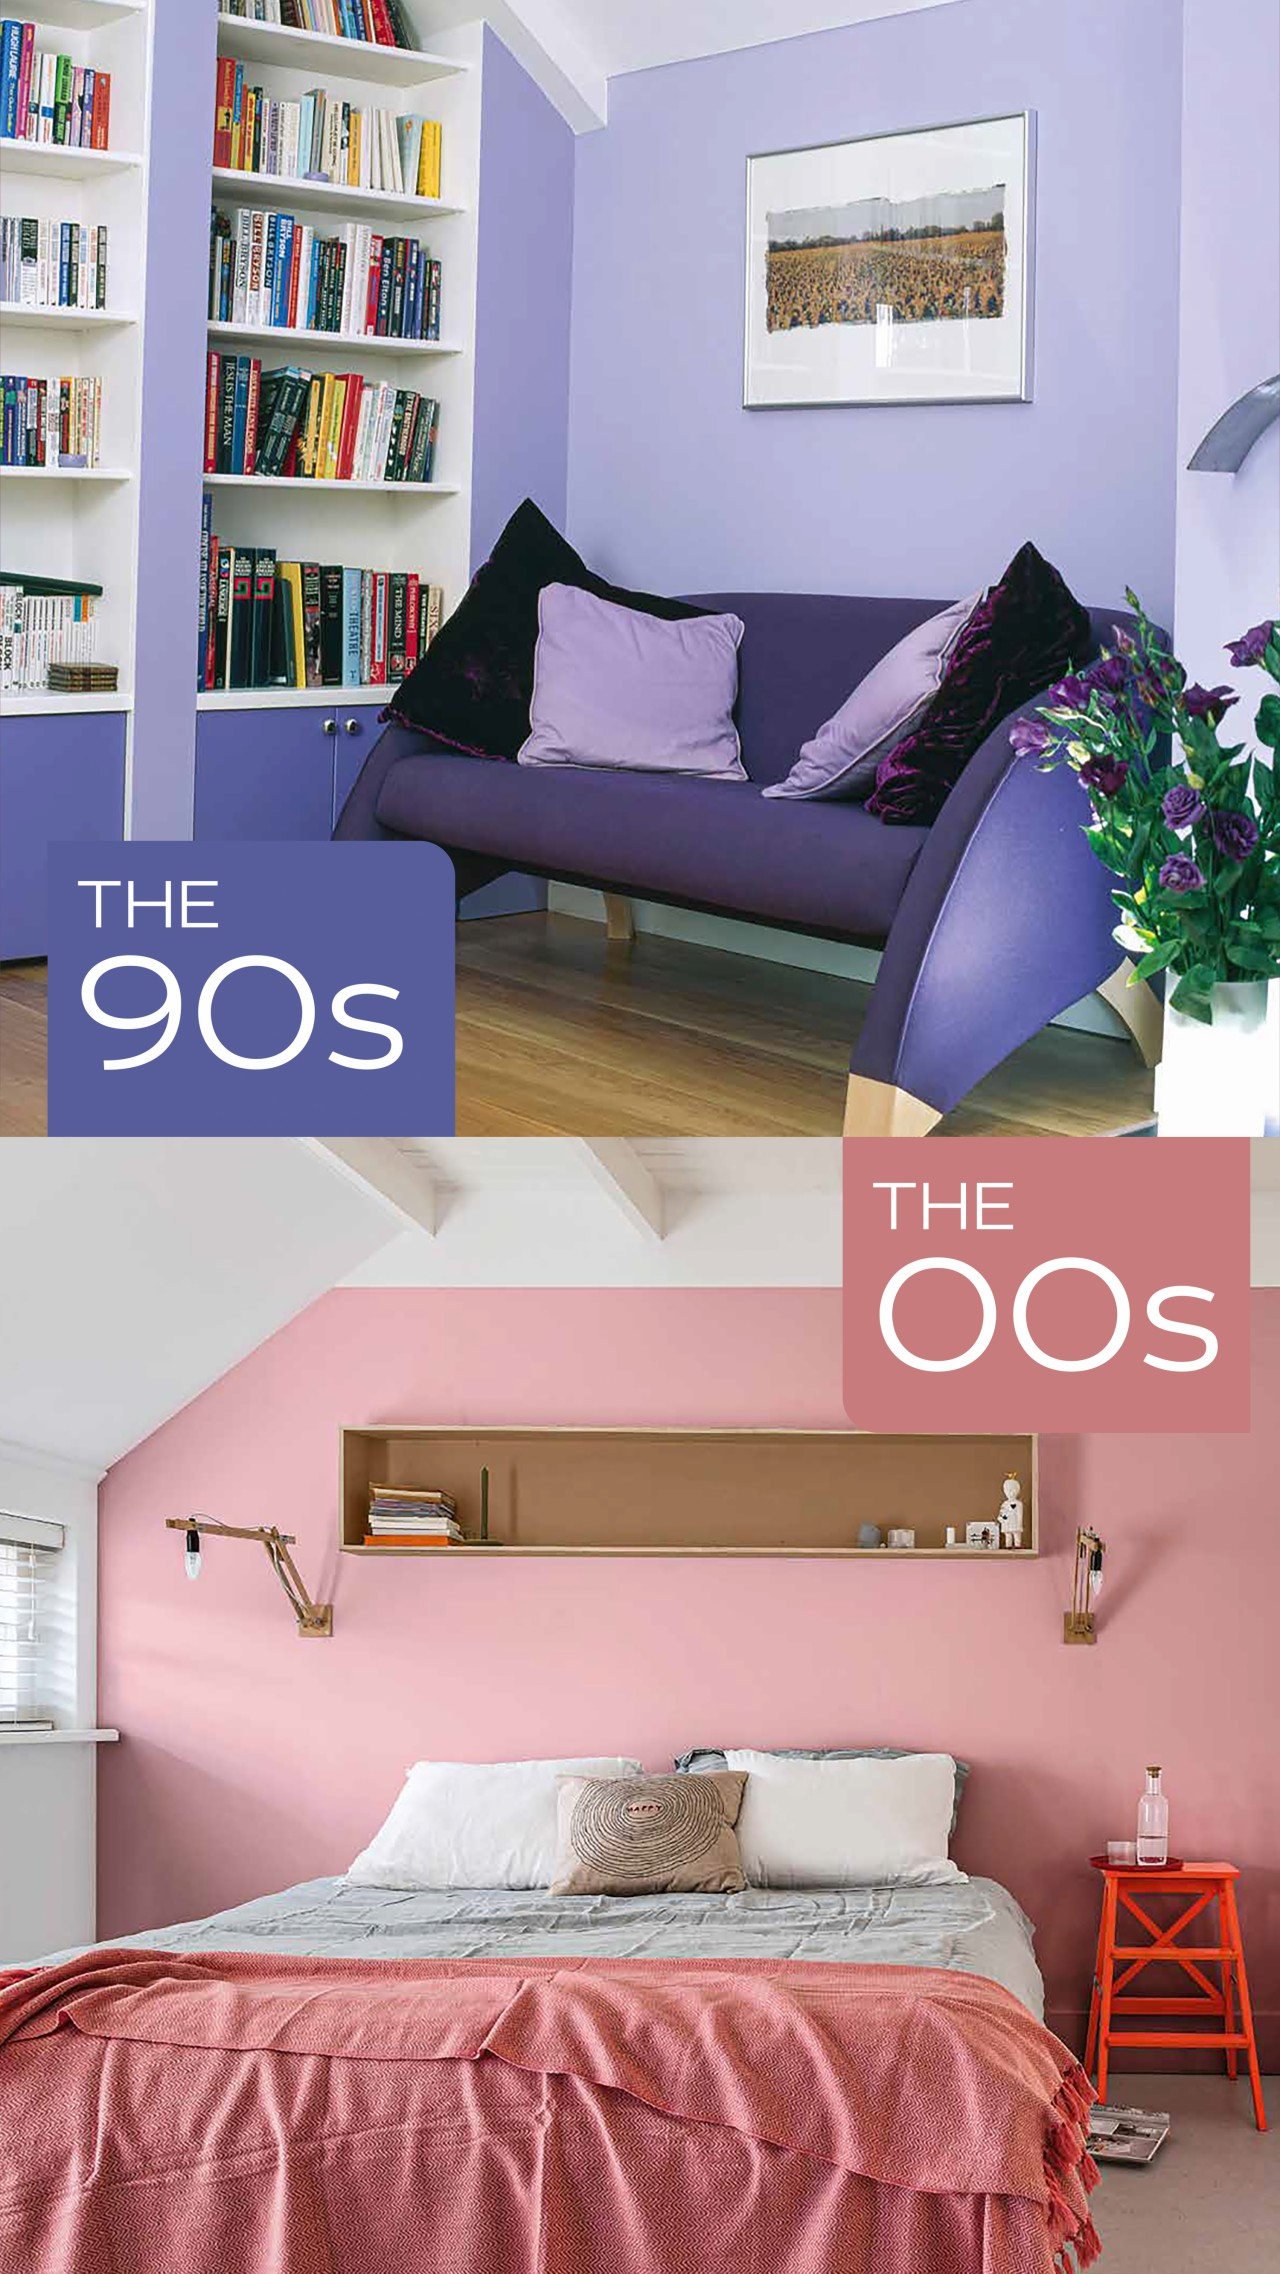 thedrum.com - Dulux: Dulux 90th Birthday